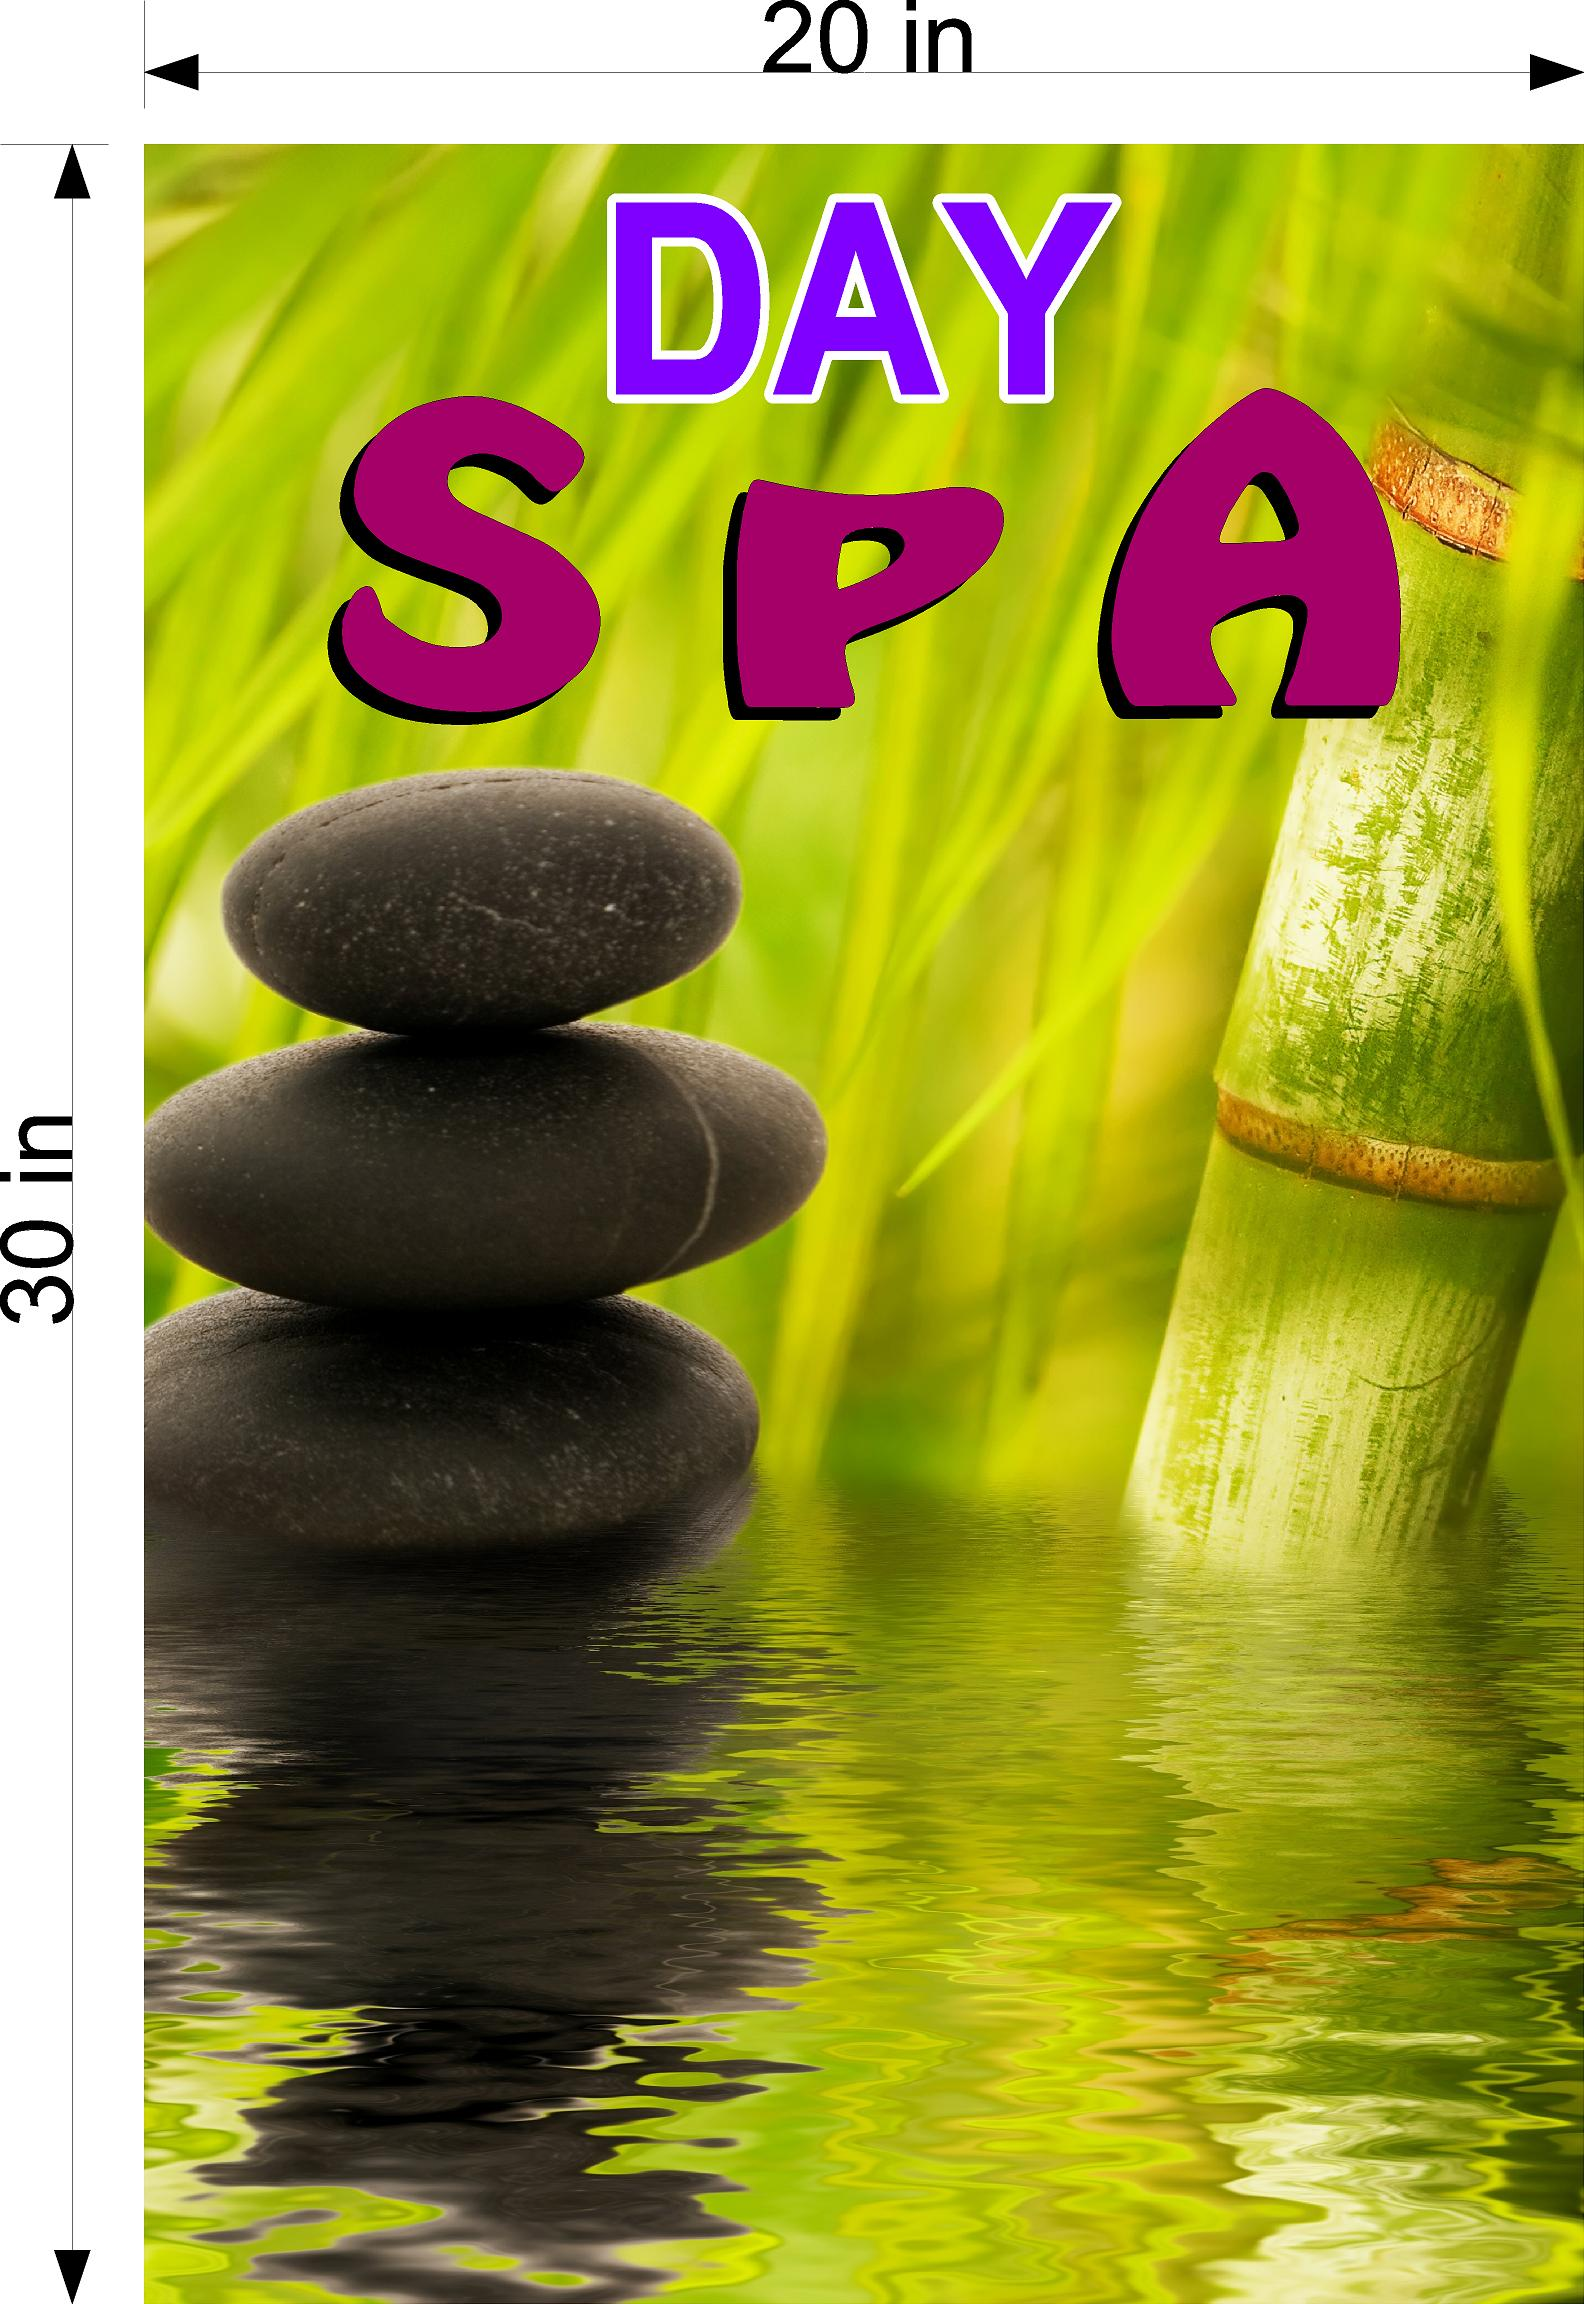 Spa 11 Wallpaper Poster Decal with Adhesive Backing Wall Sticker Decor Indoors Interior Sign Vertical